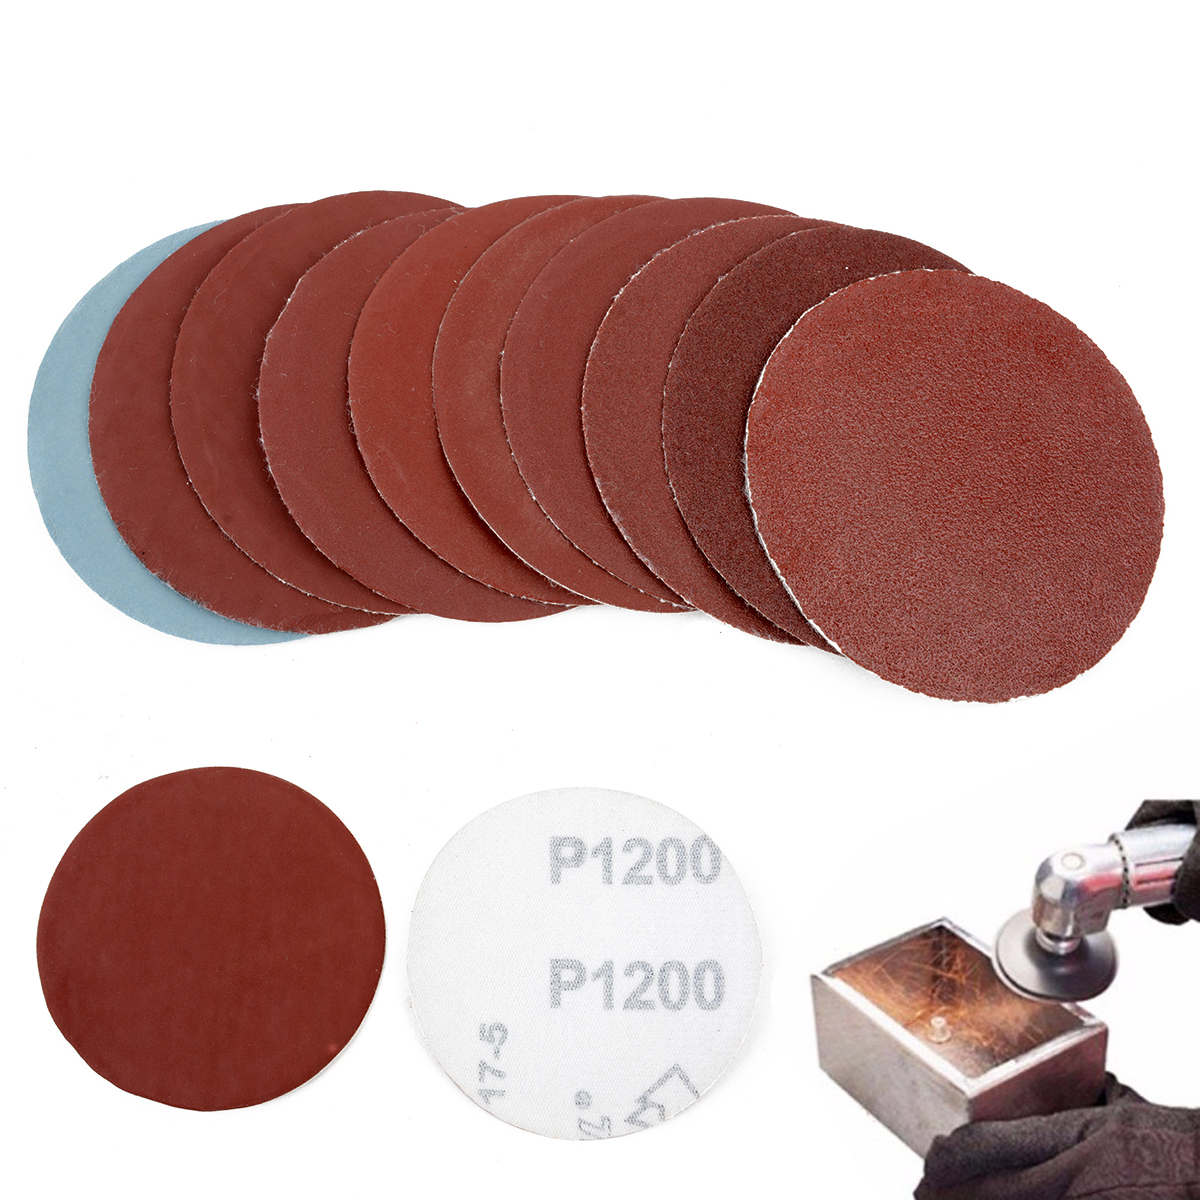 100pcs 3inch 75mm Sanding Discs Round Polishing Pad Sandpaper Sheets Mayitr For Abrasive Tools